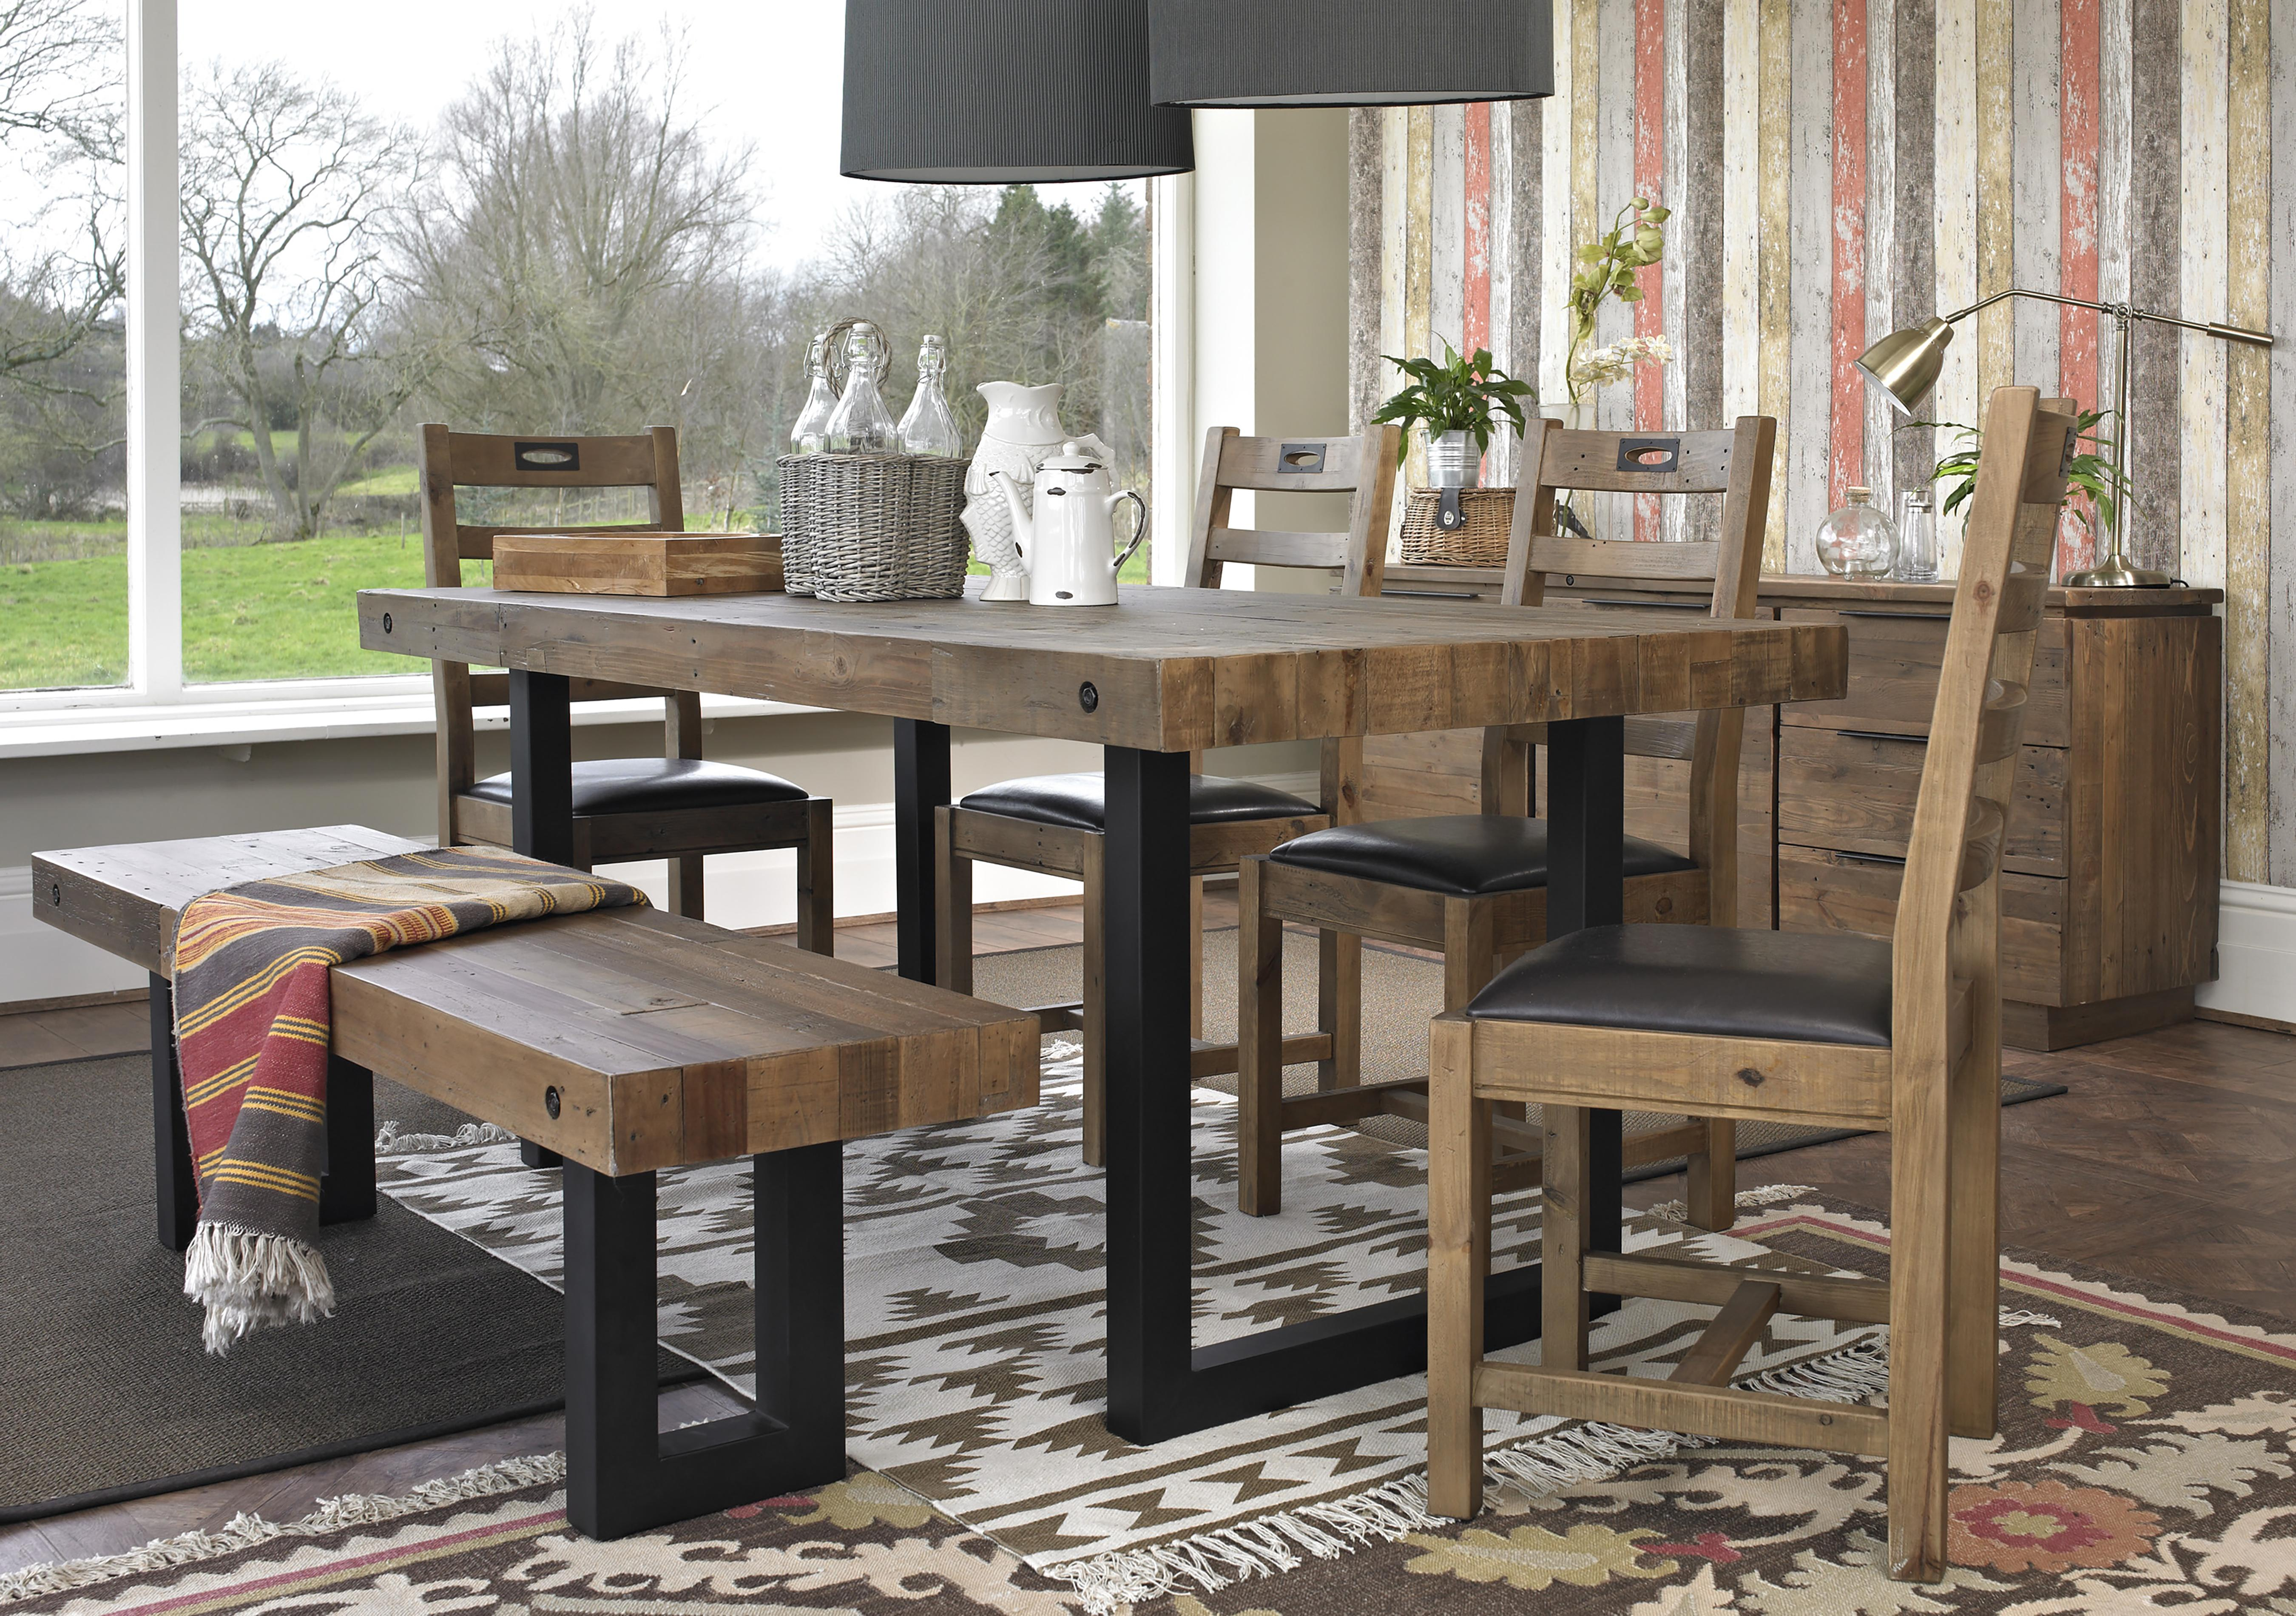 to mix match dining chairs furniture village furniture village